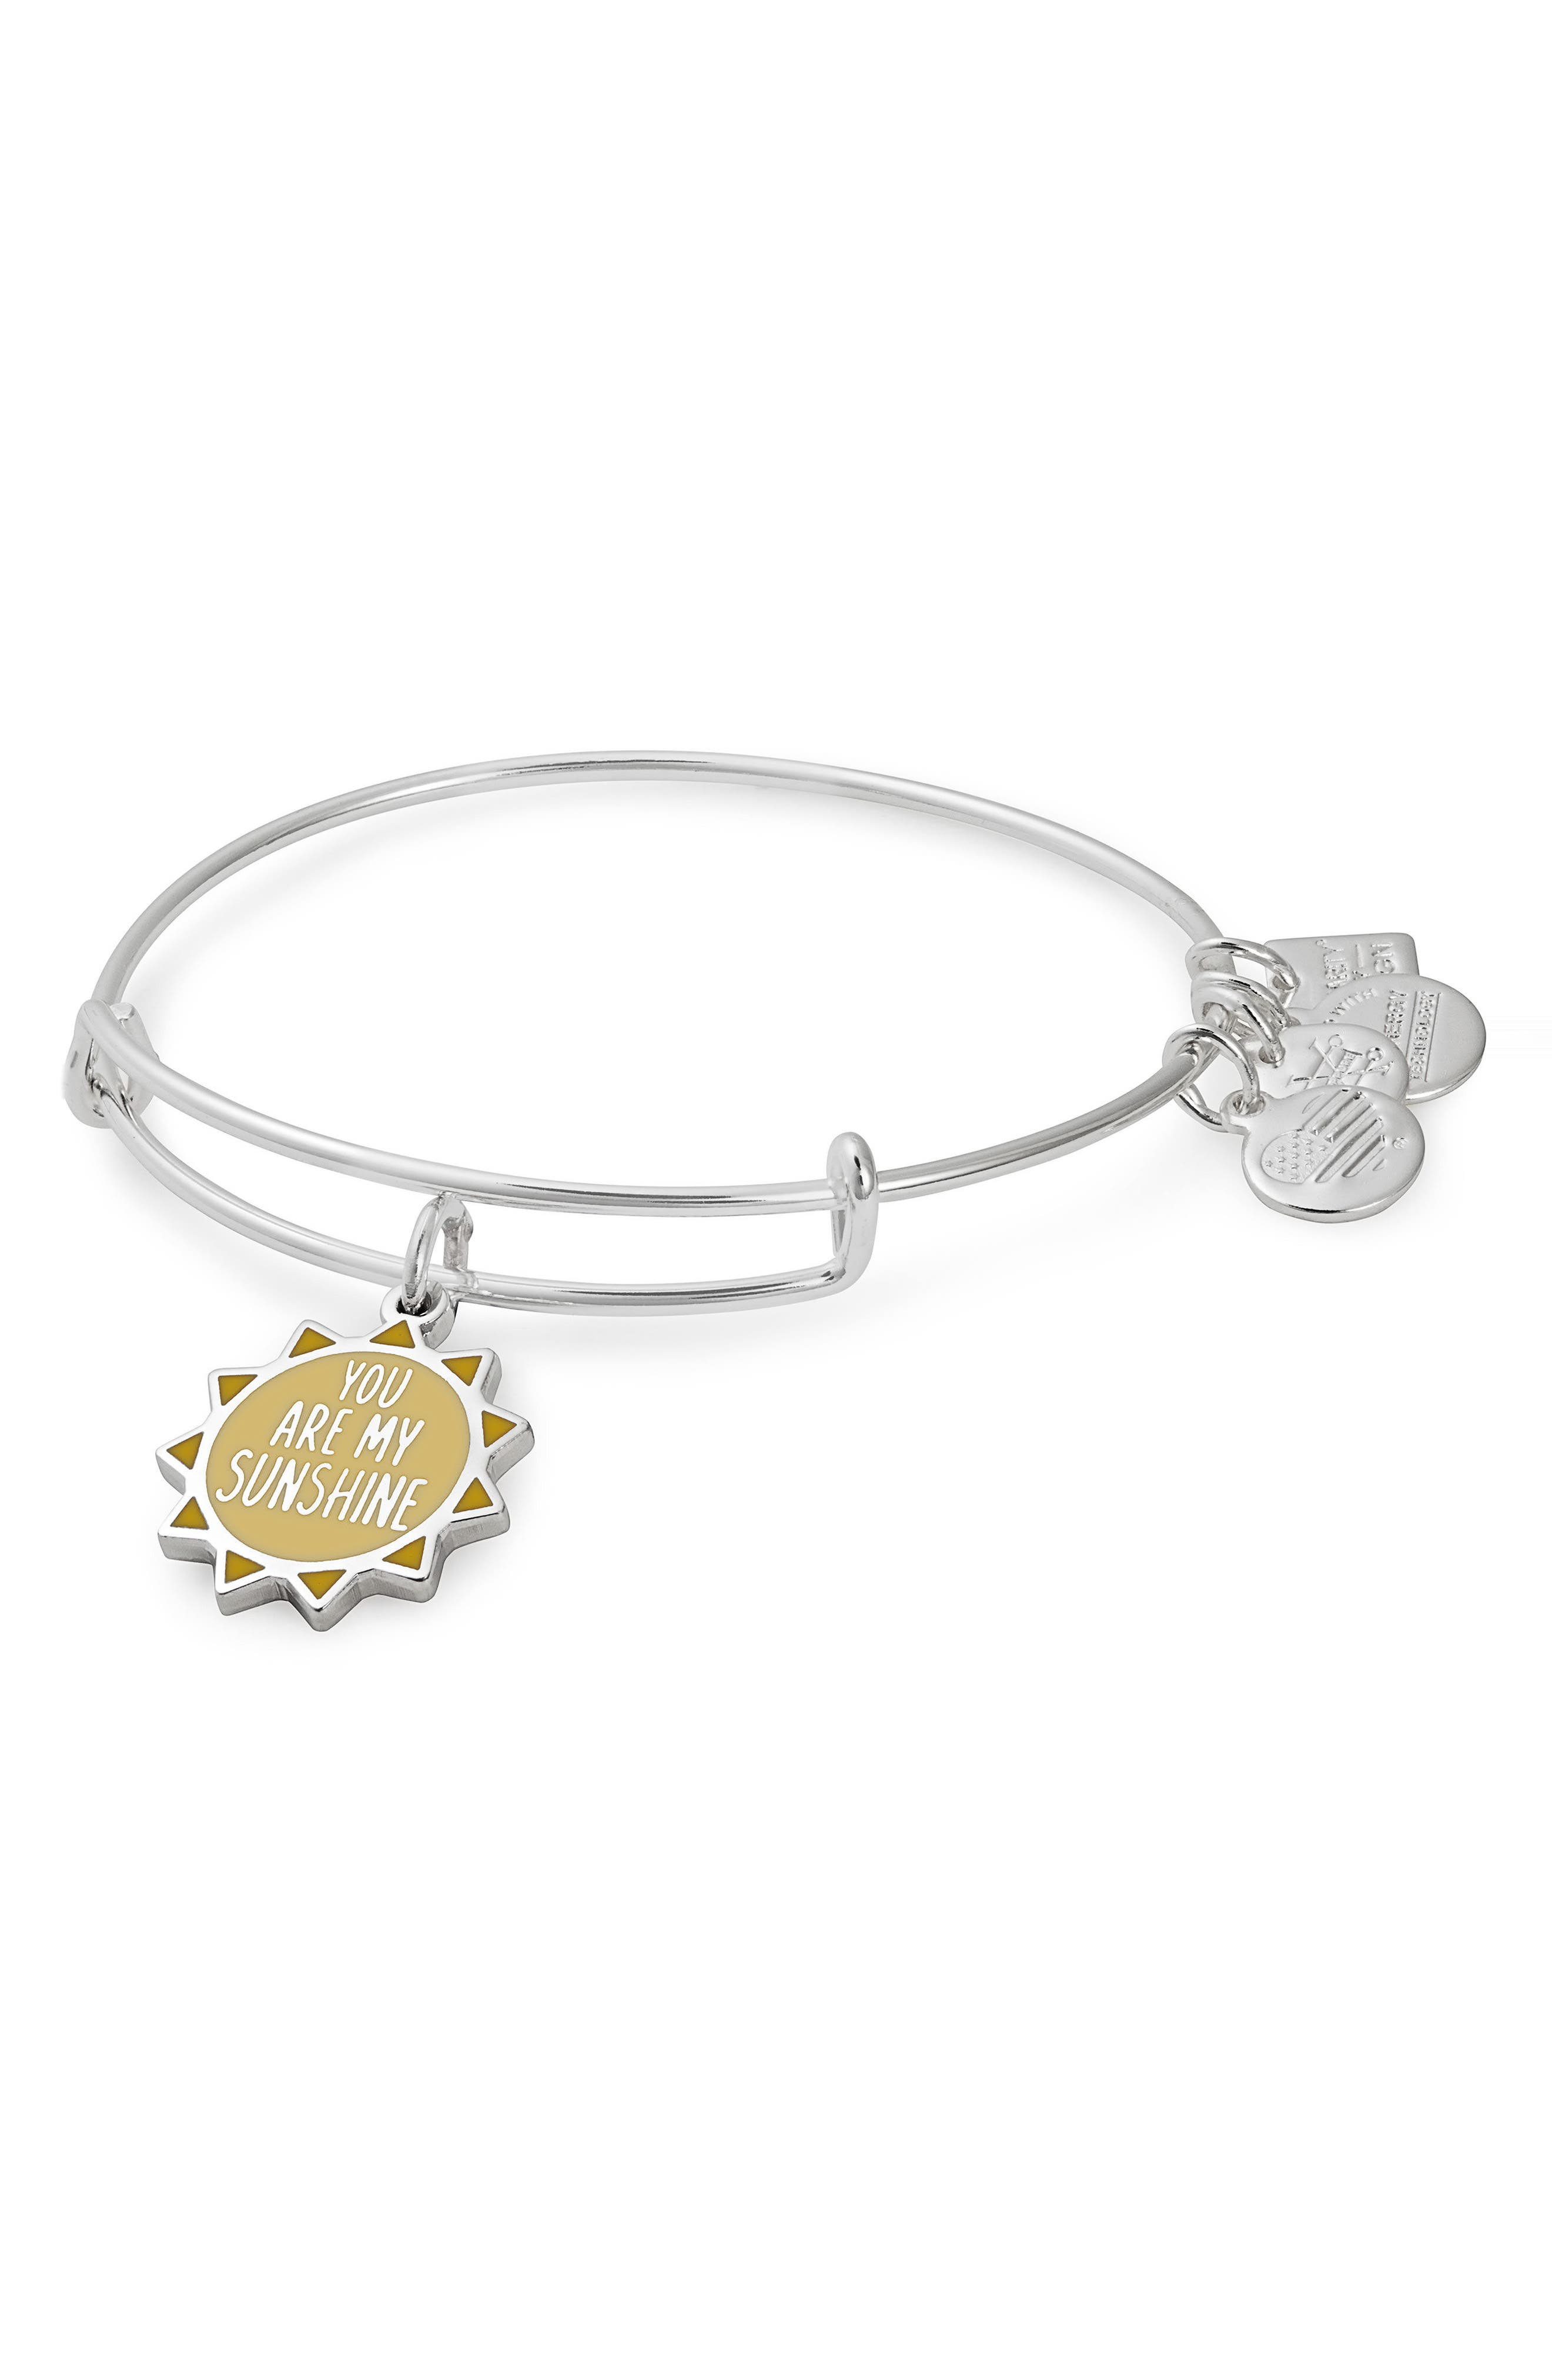 Charity by Design You Are My Sunshine Charm Bracelet,                         Main,                         color, SILVER